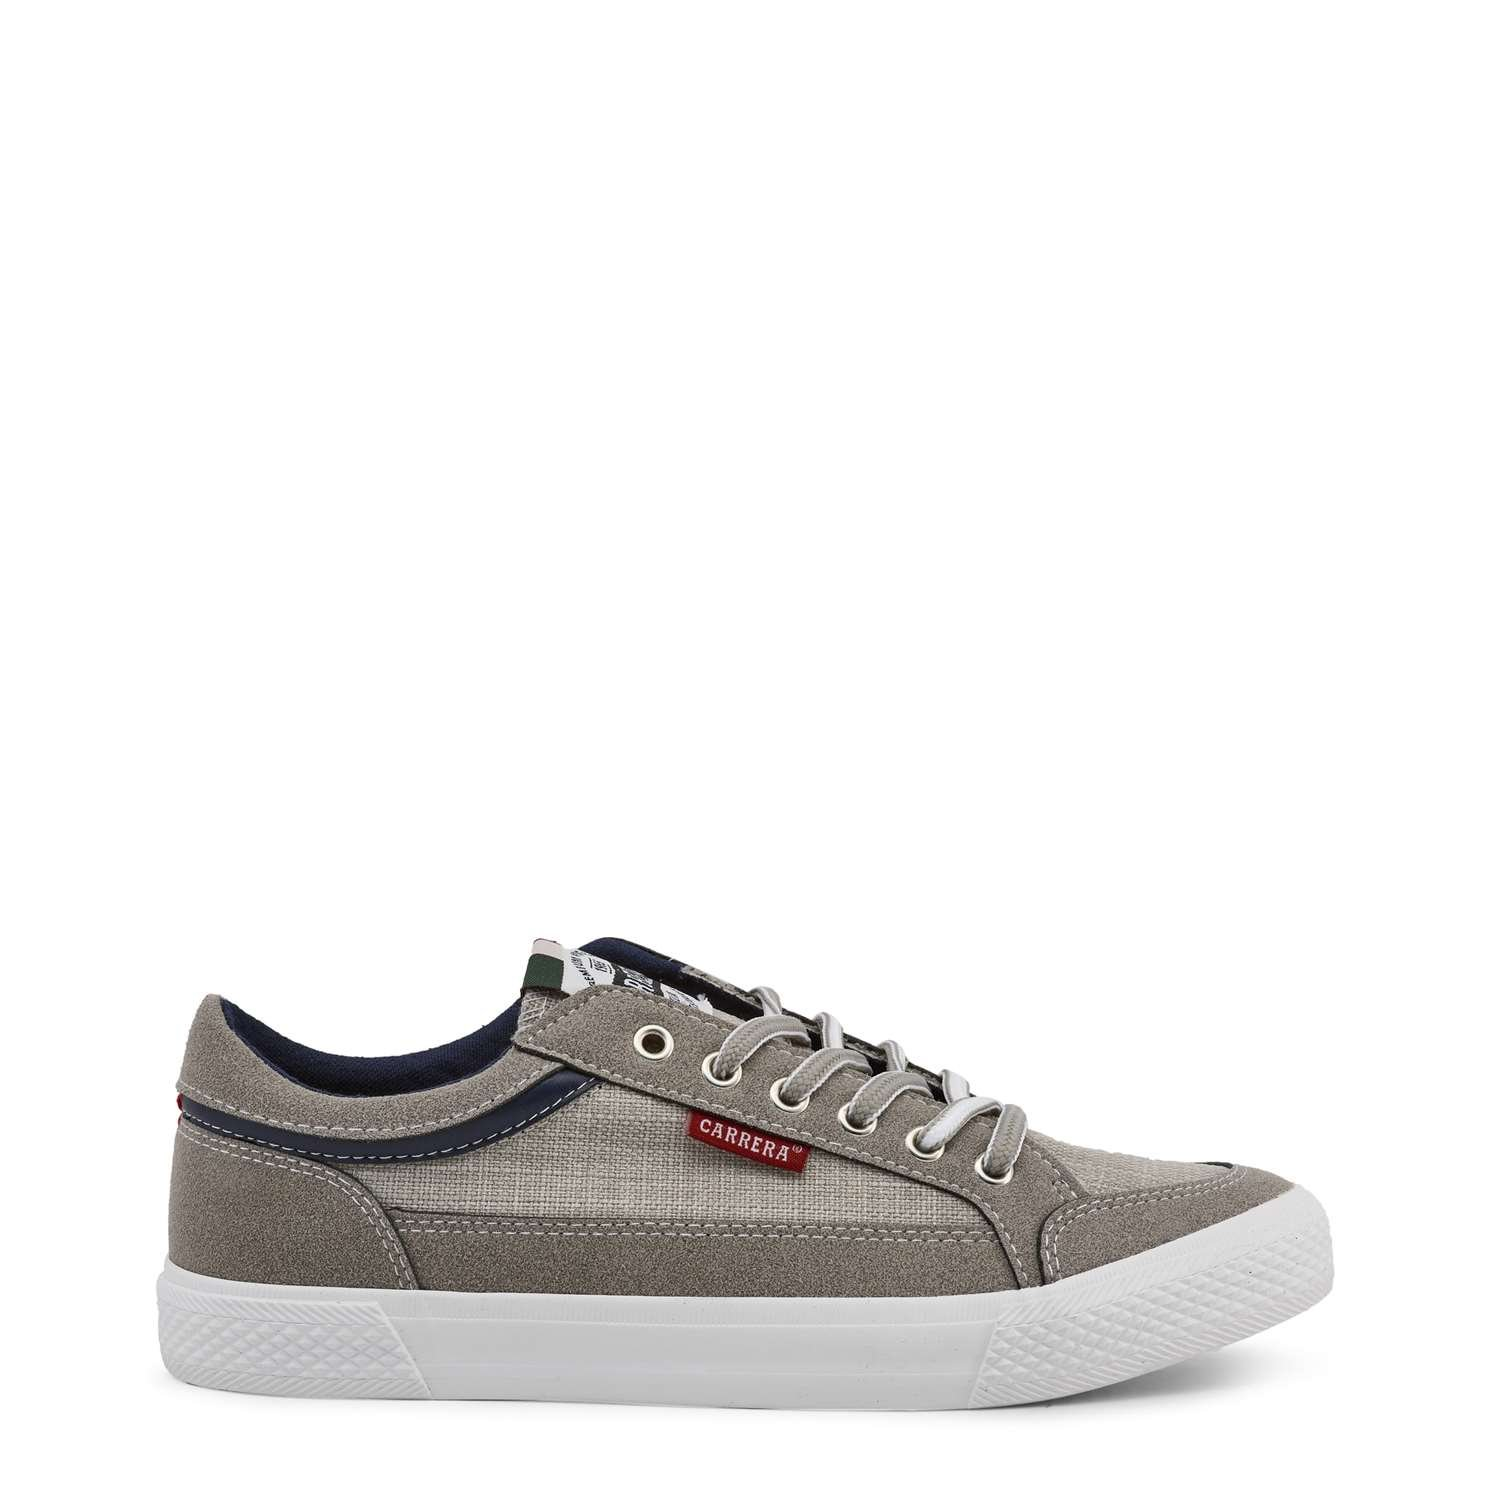 Carrera Jeans CAM810100 Sneakers Hombre Gris 43 -